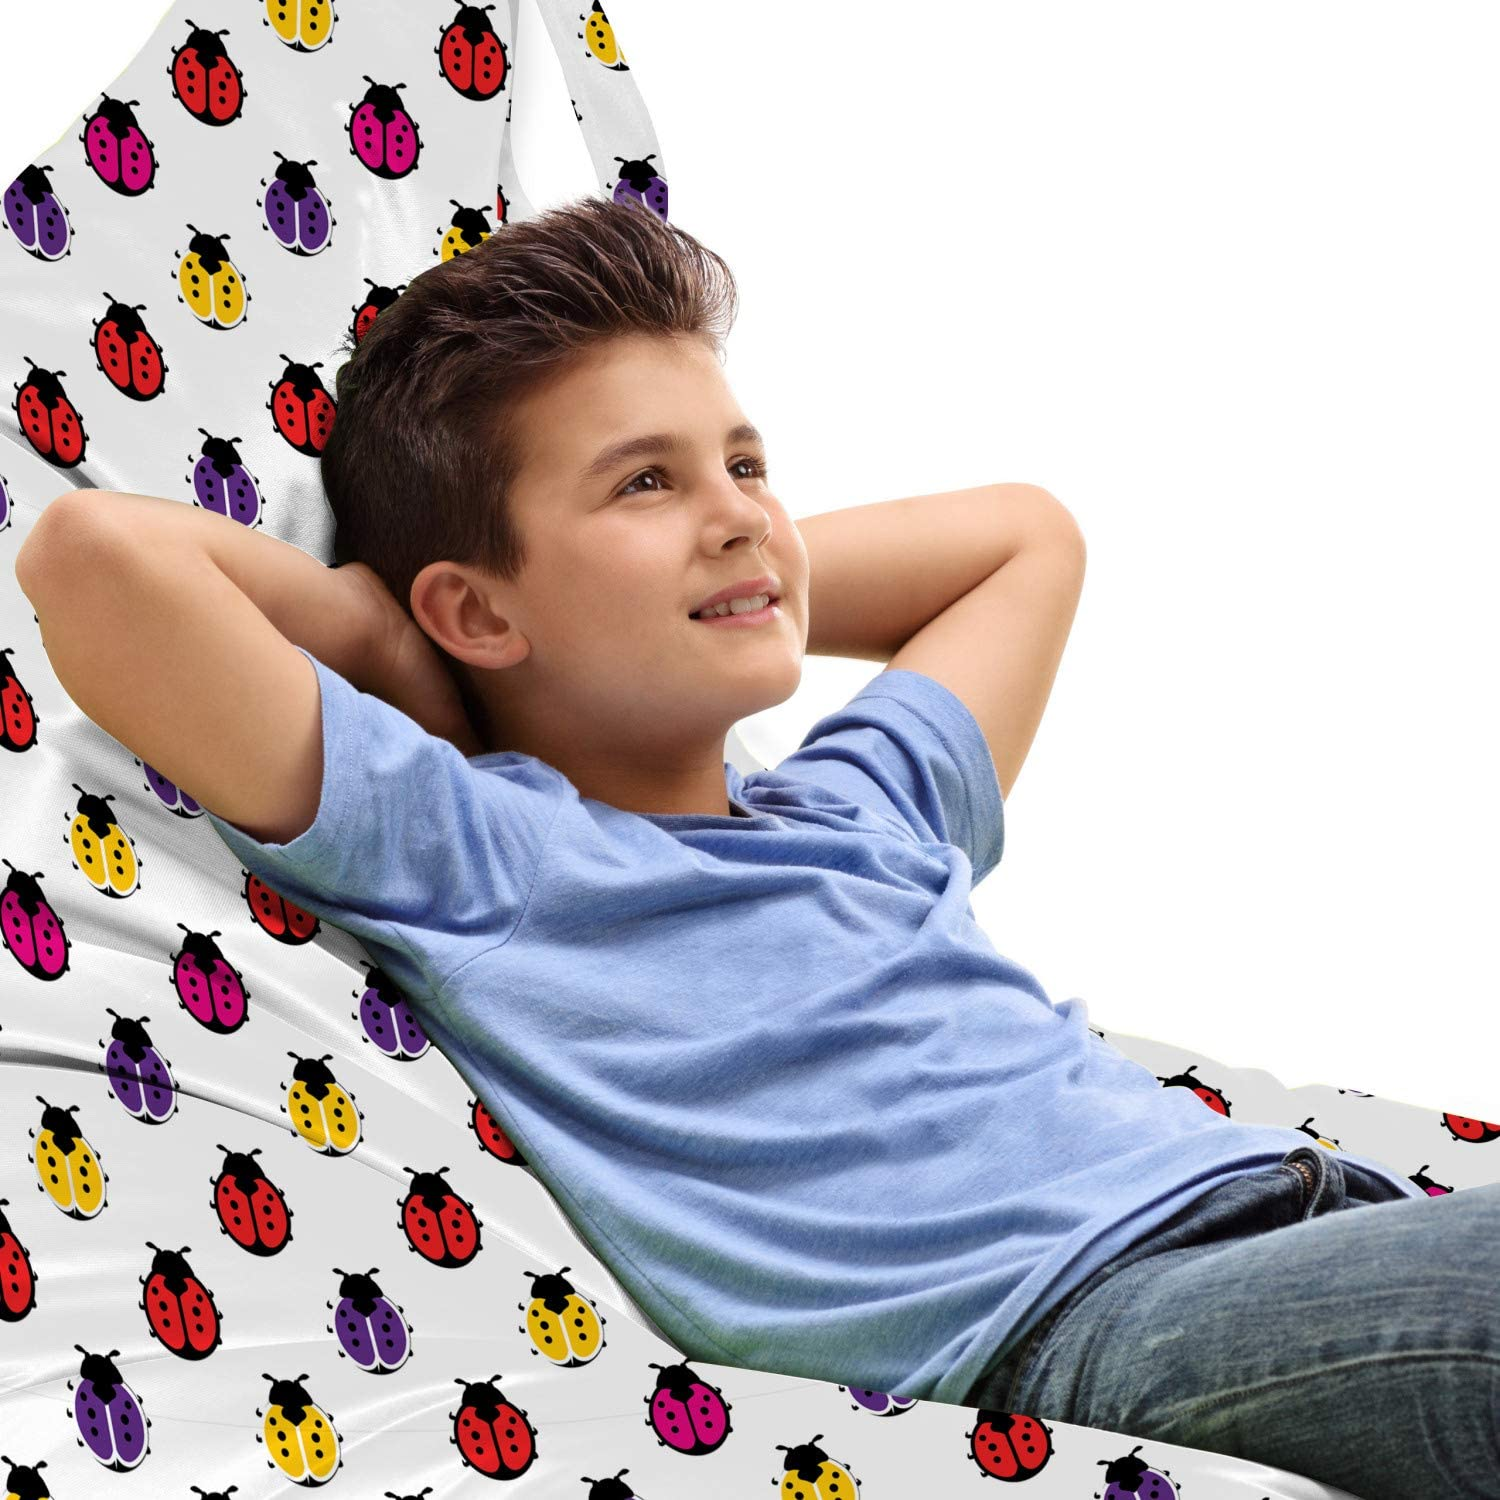 Ambesonne Sales of SALE items from new works Ladybug Lounger Chair Bag Colorful Spotted Popular popular Minimal Wi